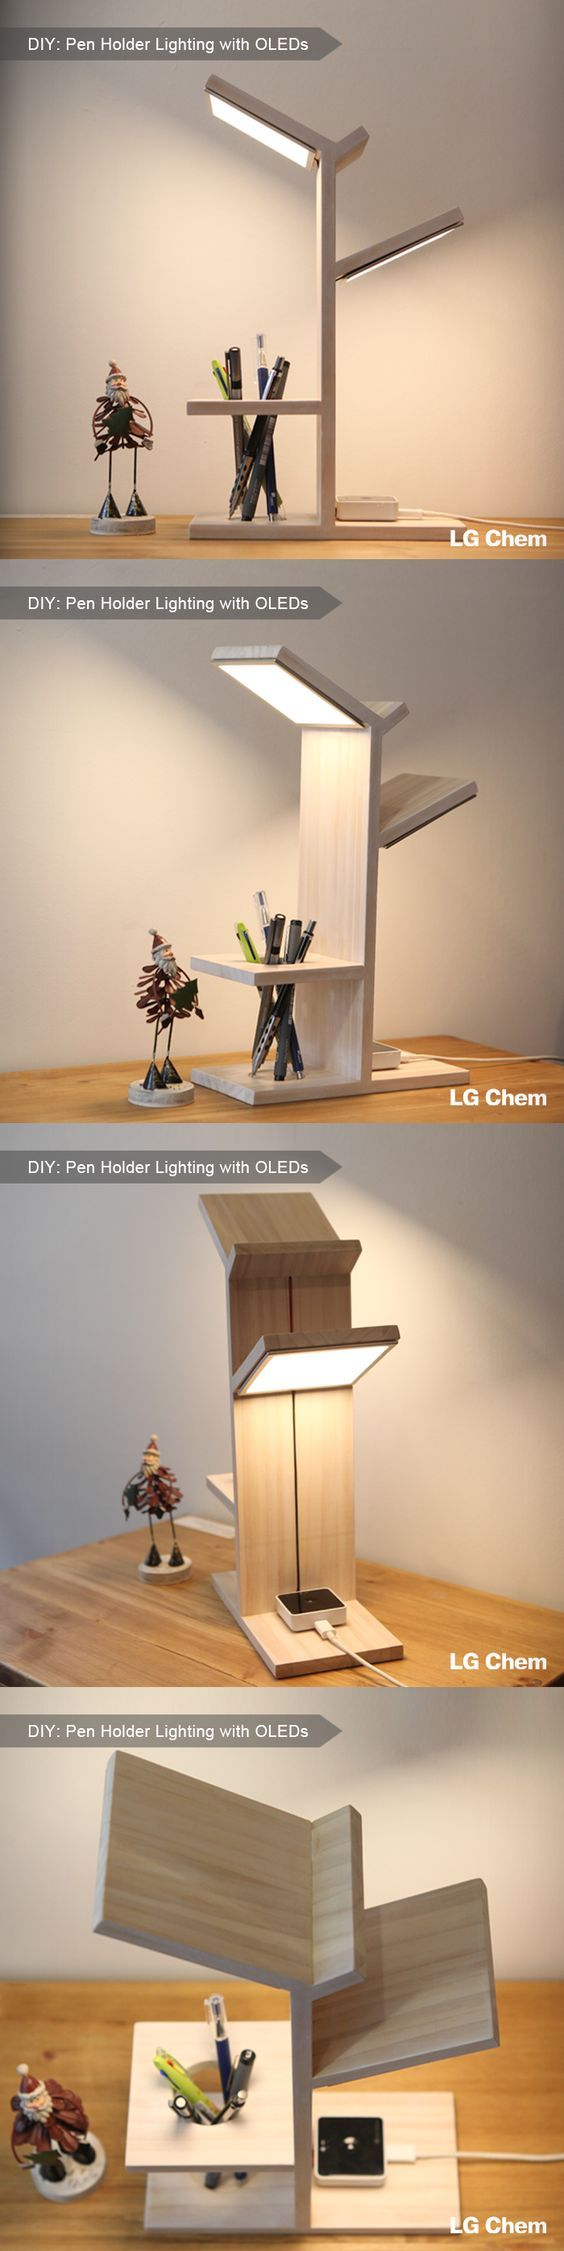 A lamp and pen holder in one made with the 2 100x100mm OLED panels and driver included in an LG Display DIY kit. (Designed by Jung hoon Ko) Check out Organic Lights at http://www.organic-lights.com/en/lg-display-do-it-yourself-kit.html: